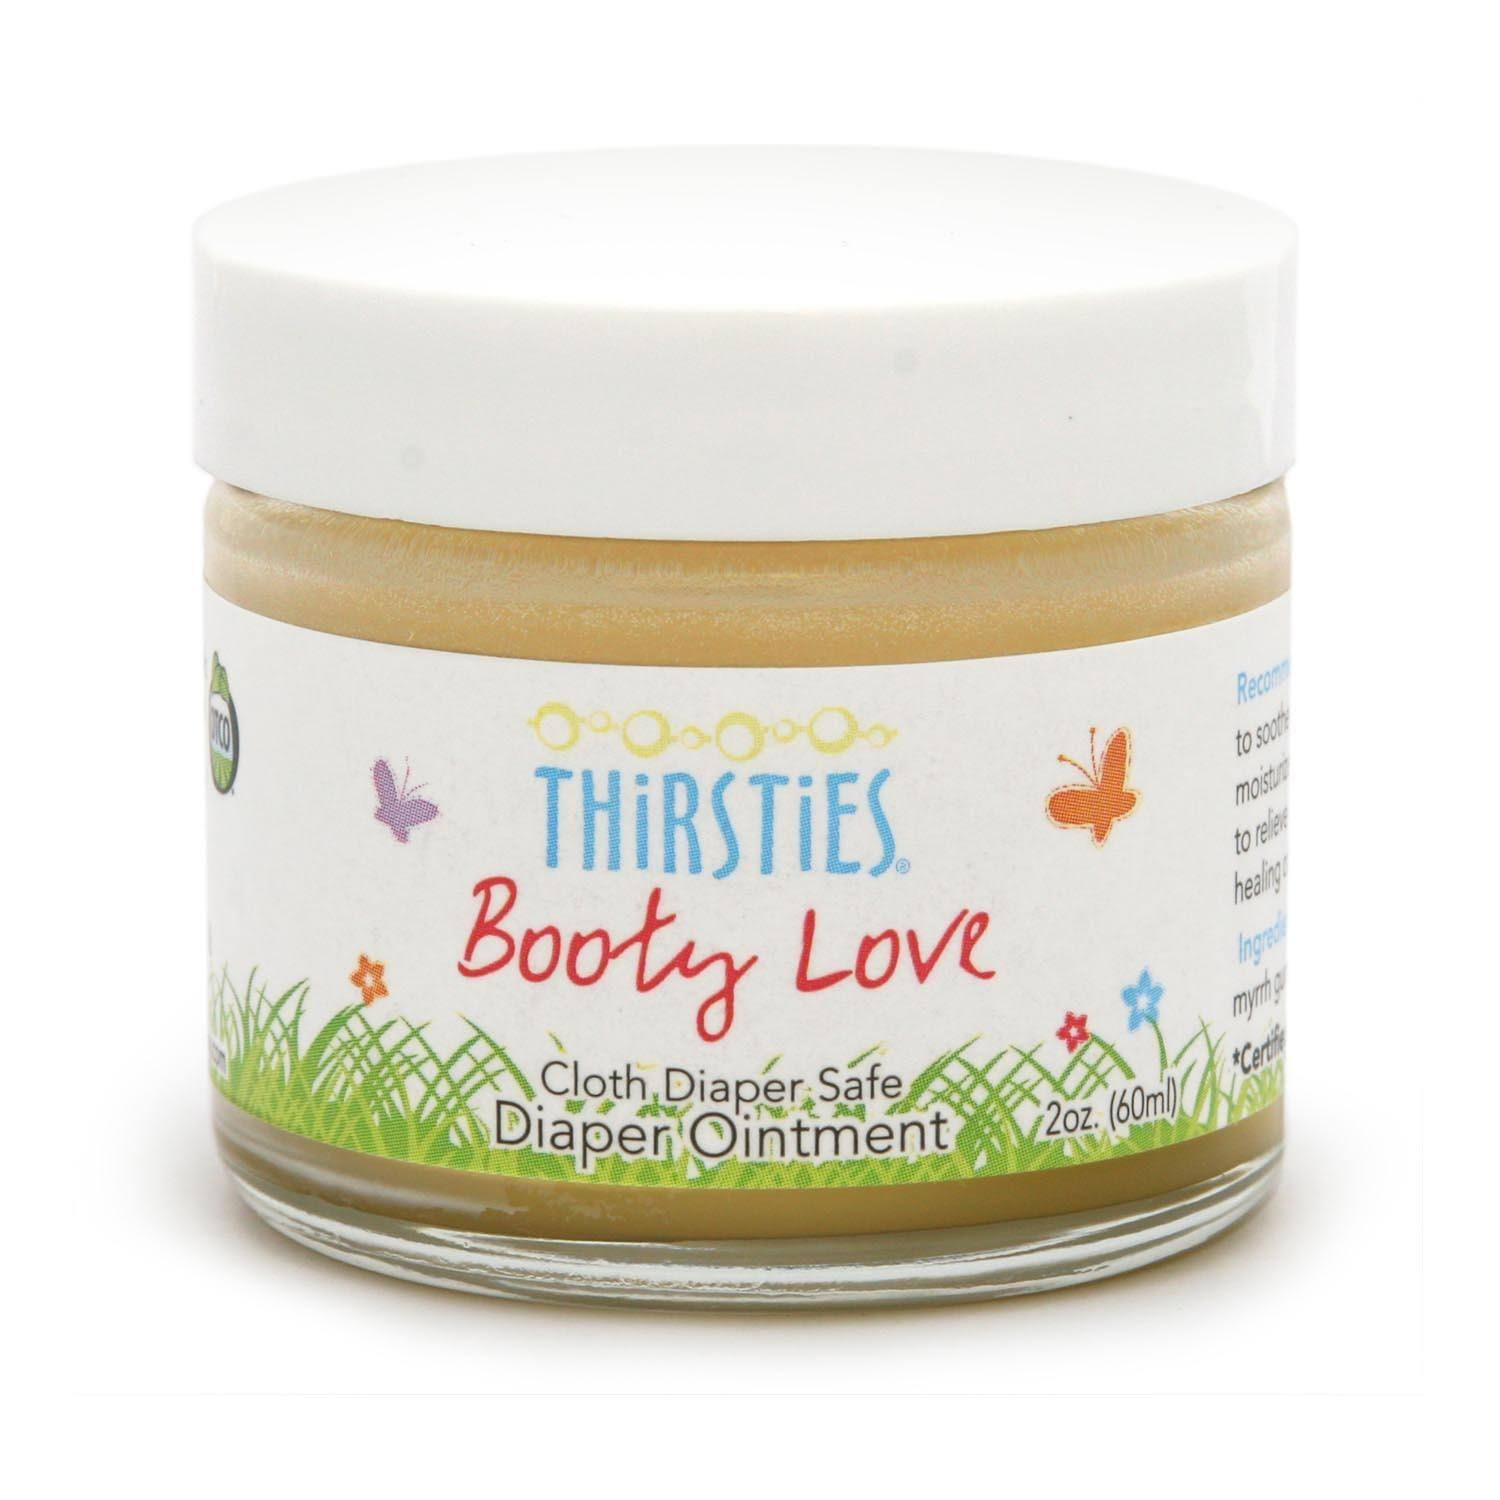 Thirsties Booty Love Diaper Ointment - 2oz